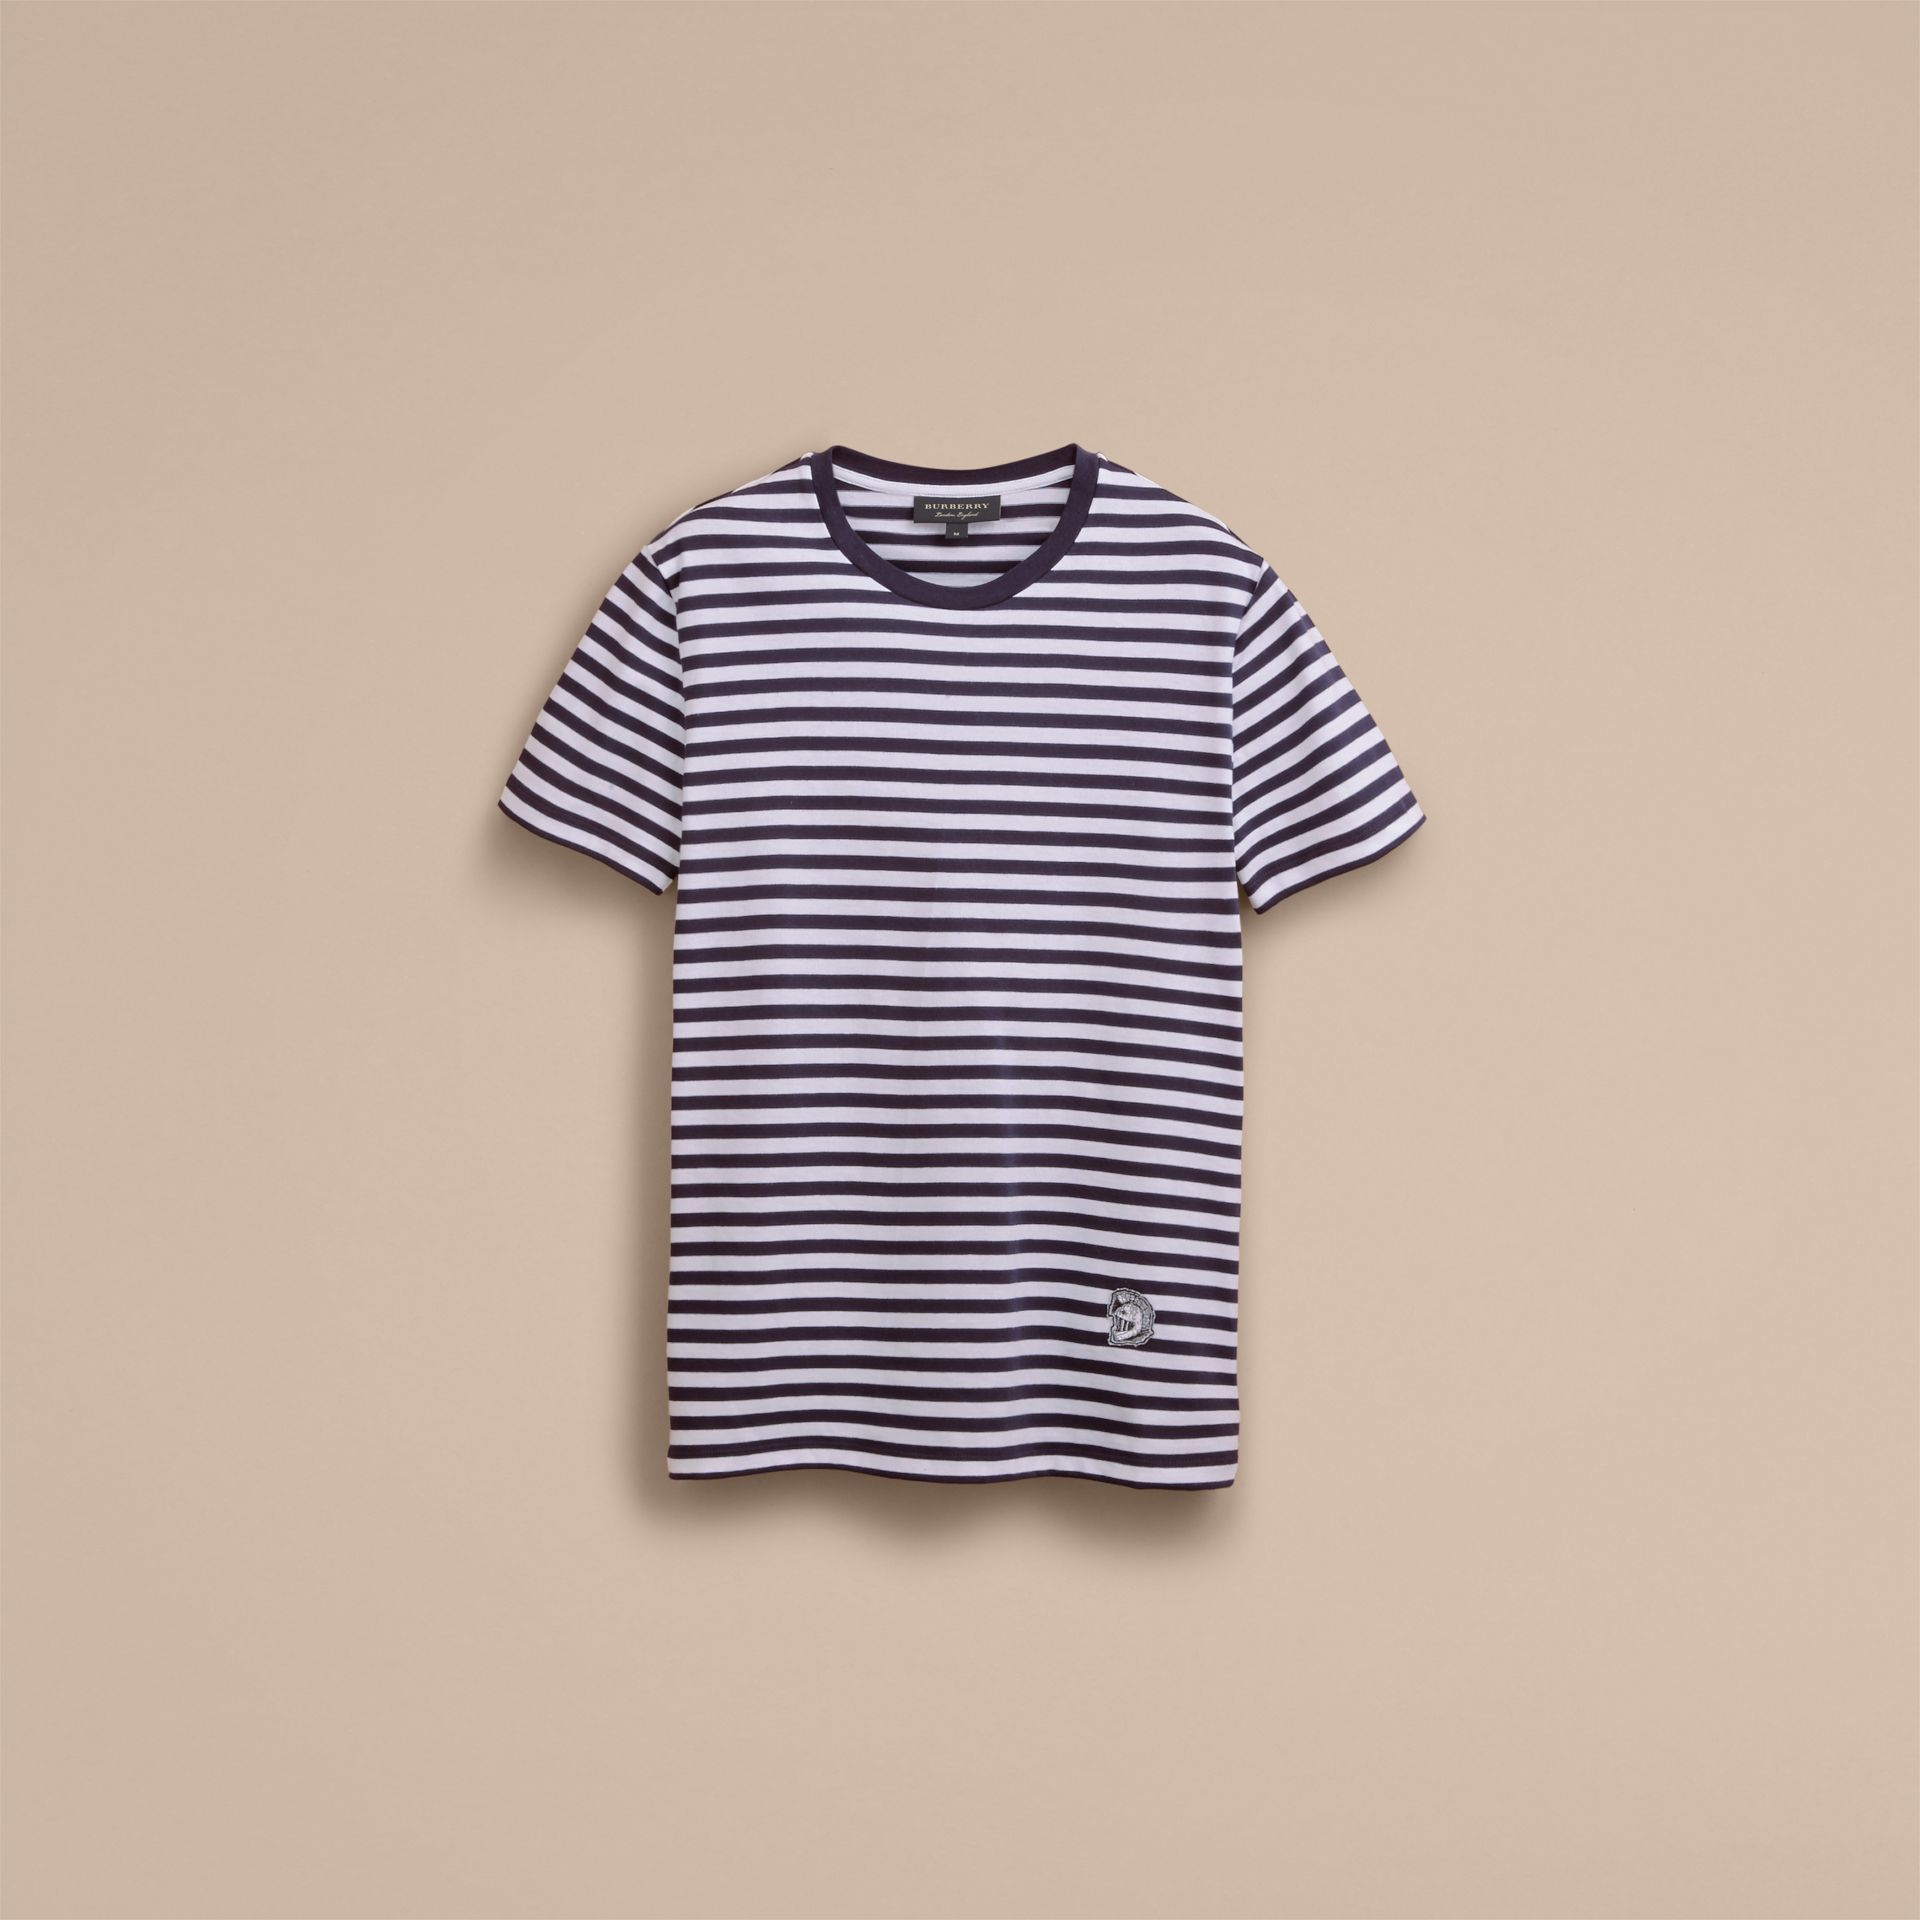 Breton Stripe Cotton T-shirt with Pallas Helmet Motif in Navy/white - Men | Burberry - gallery image 4